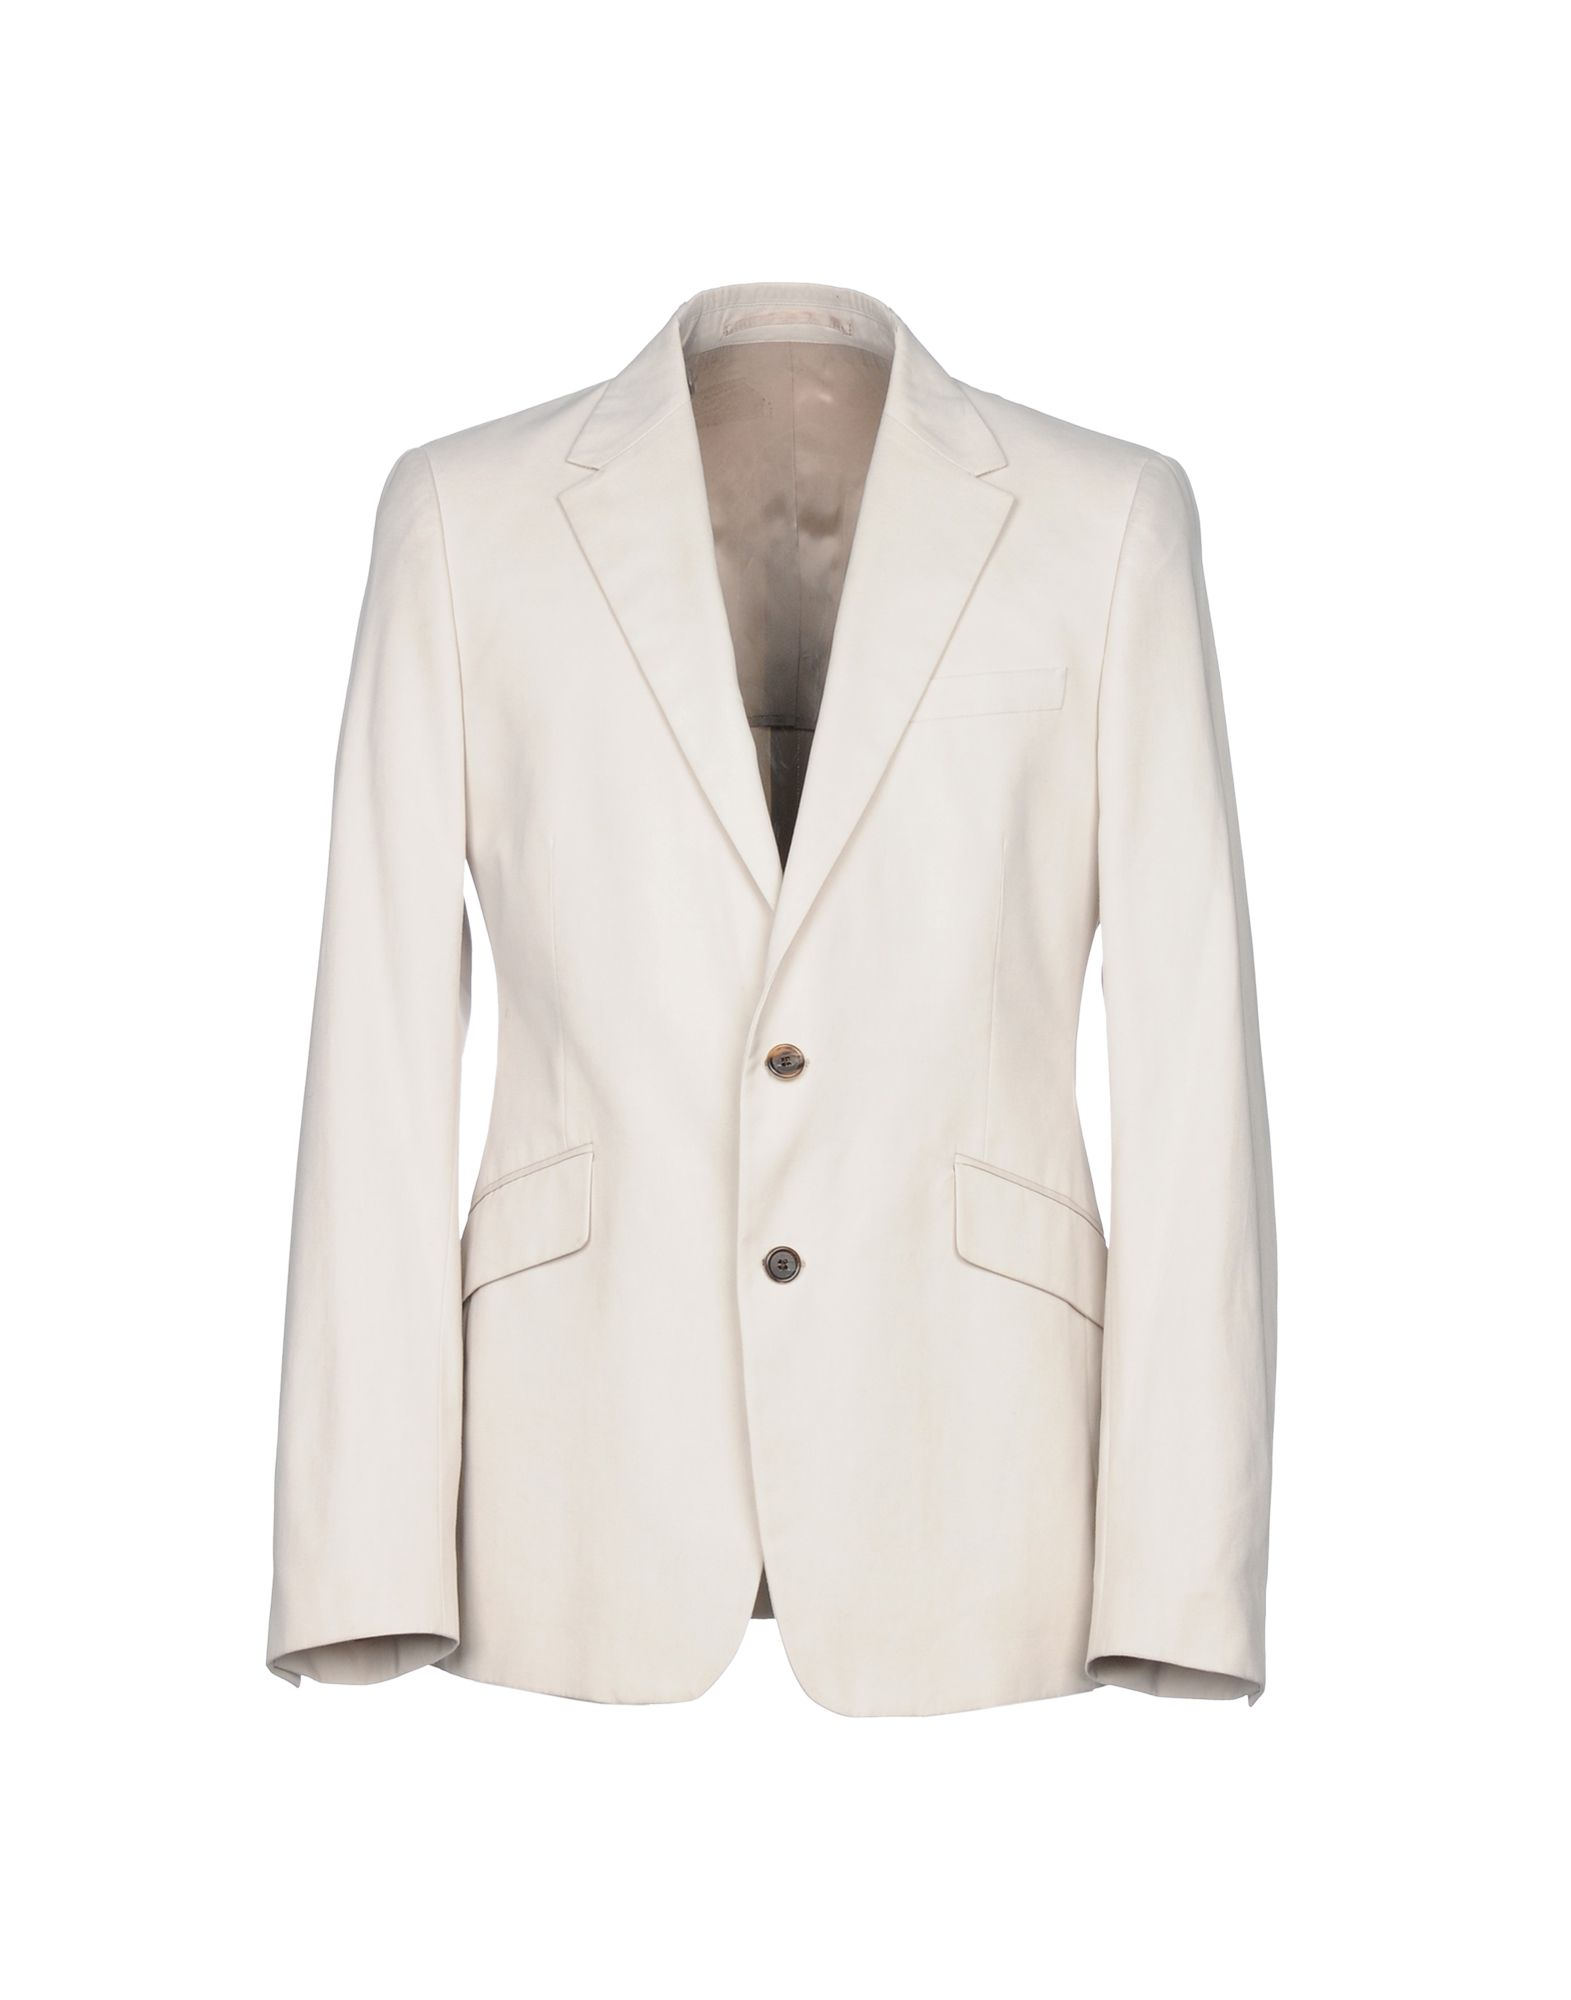 beige or white cotton Prada blazer suit jacket